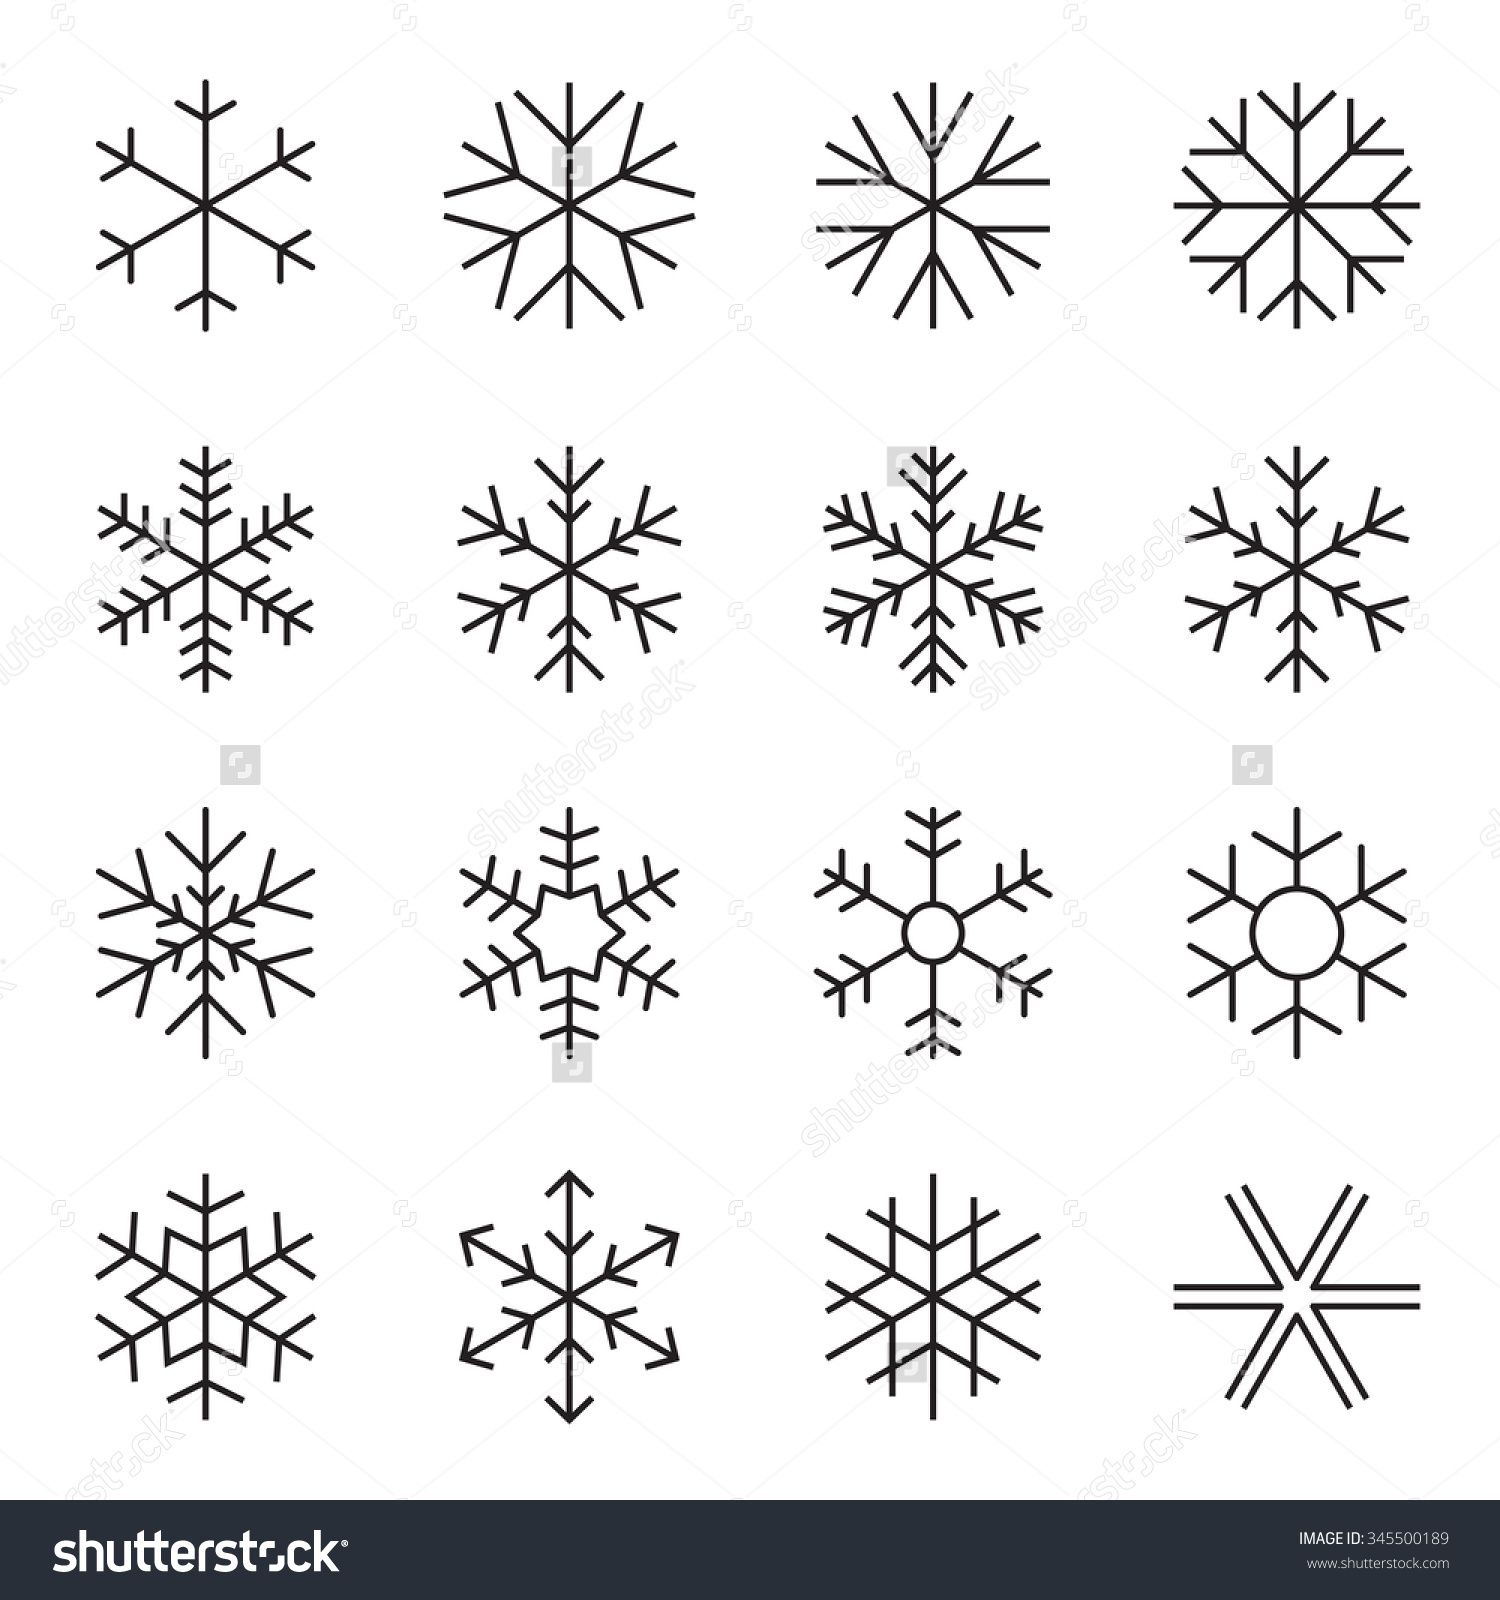 Stock Vector Thin Line Simple Snowflake Icons Symbols Of Winter Frost Snow Freezer Refrigerator Froz Simple Snowflake Bullet Journal Doodles Snowflakes Drawing